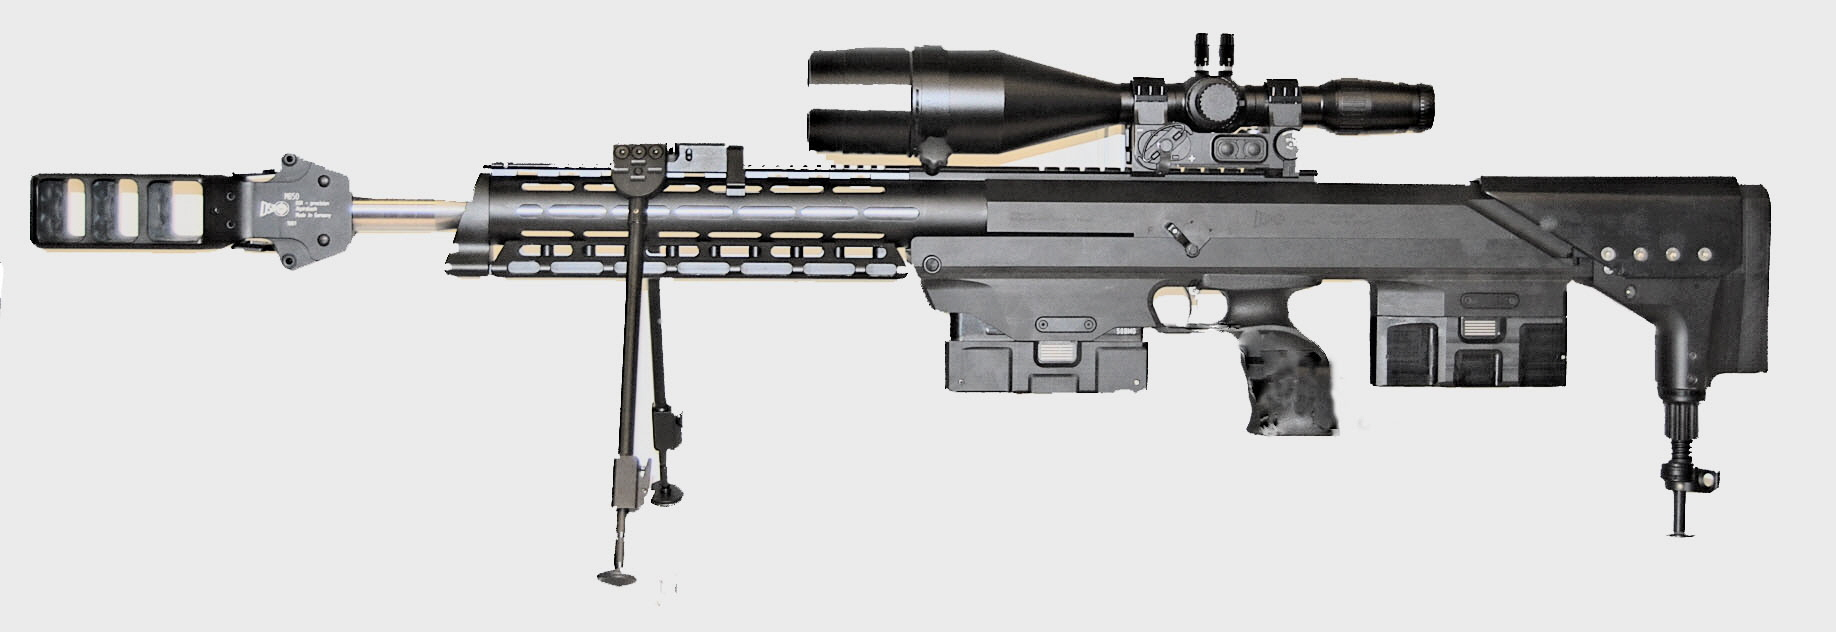 Global Rifle specialists in accuracy and long range shooting